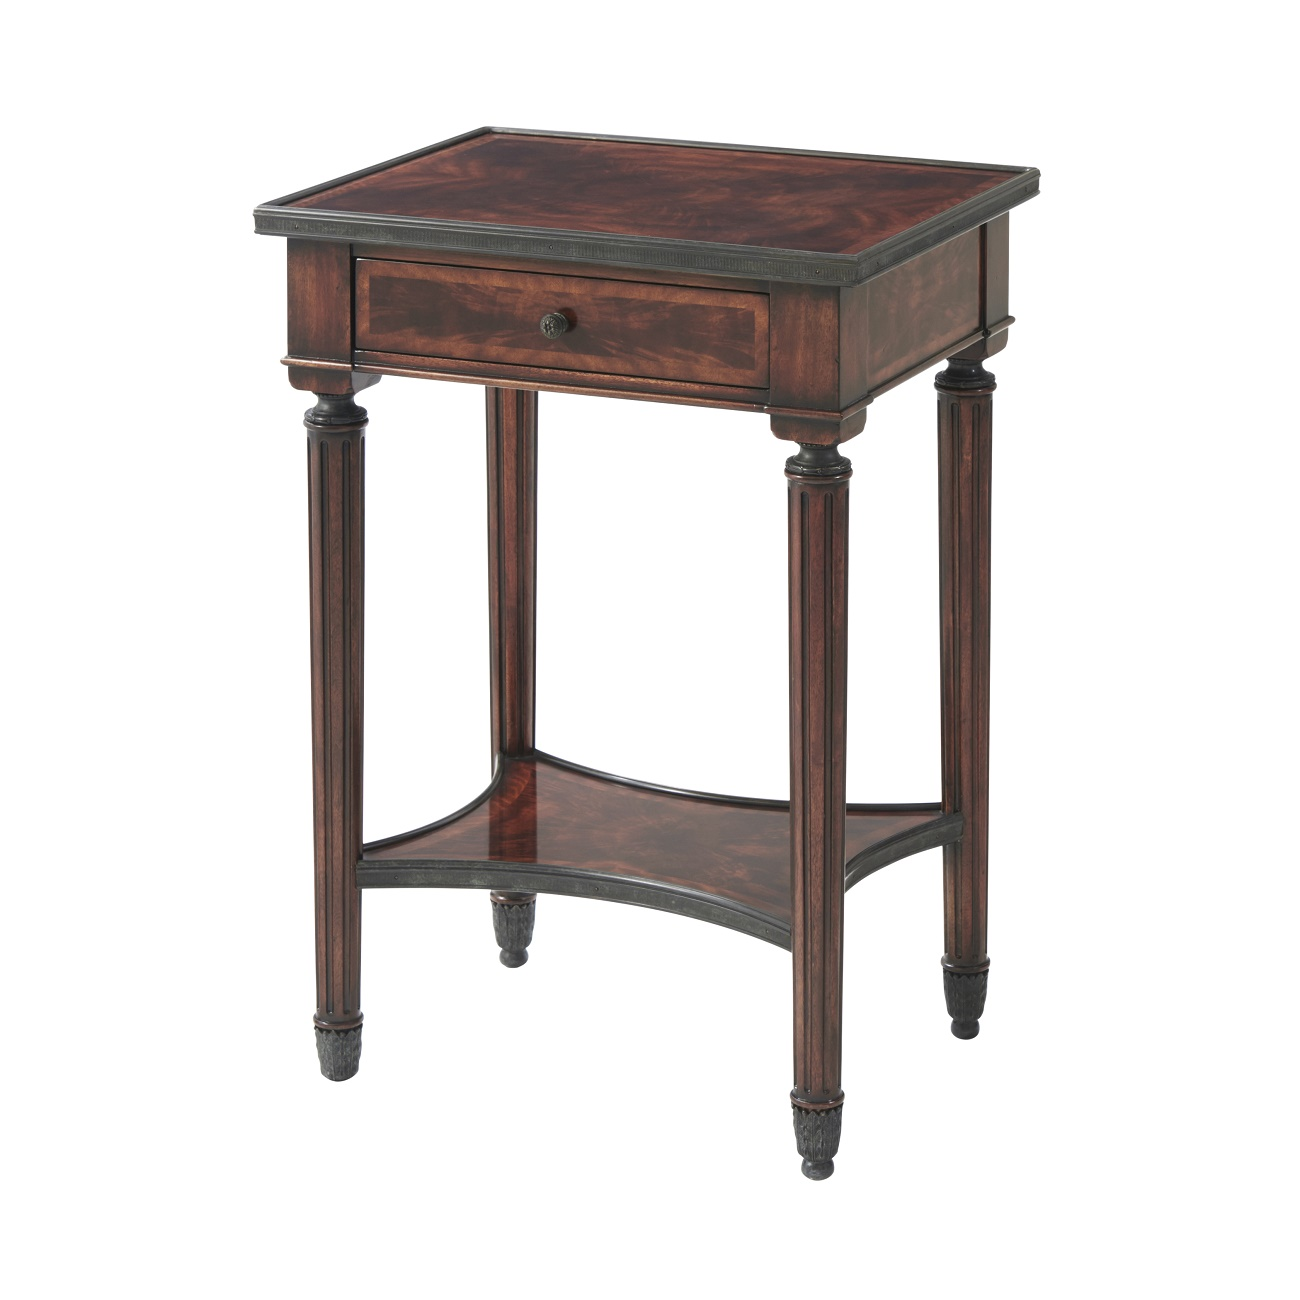 5005 280 A Rural Rectory Accent Table theodore alexander